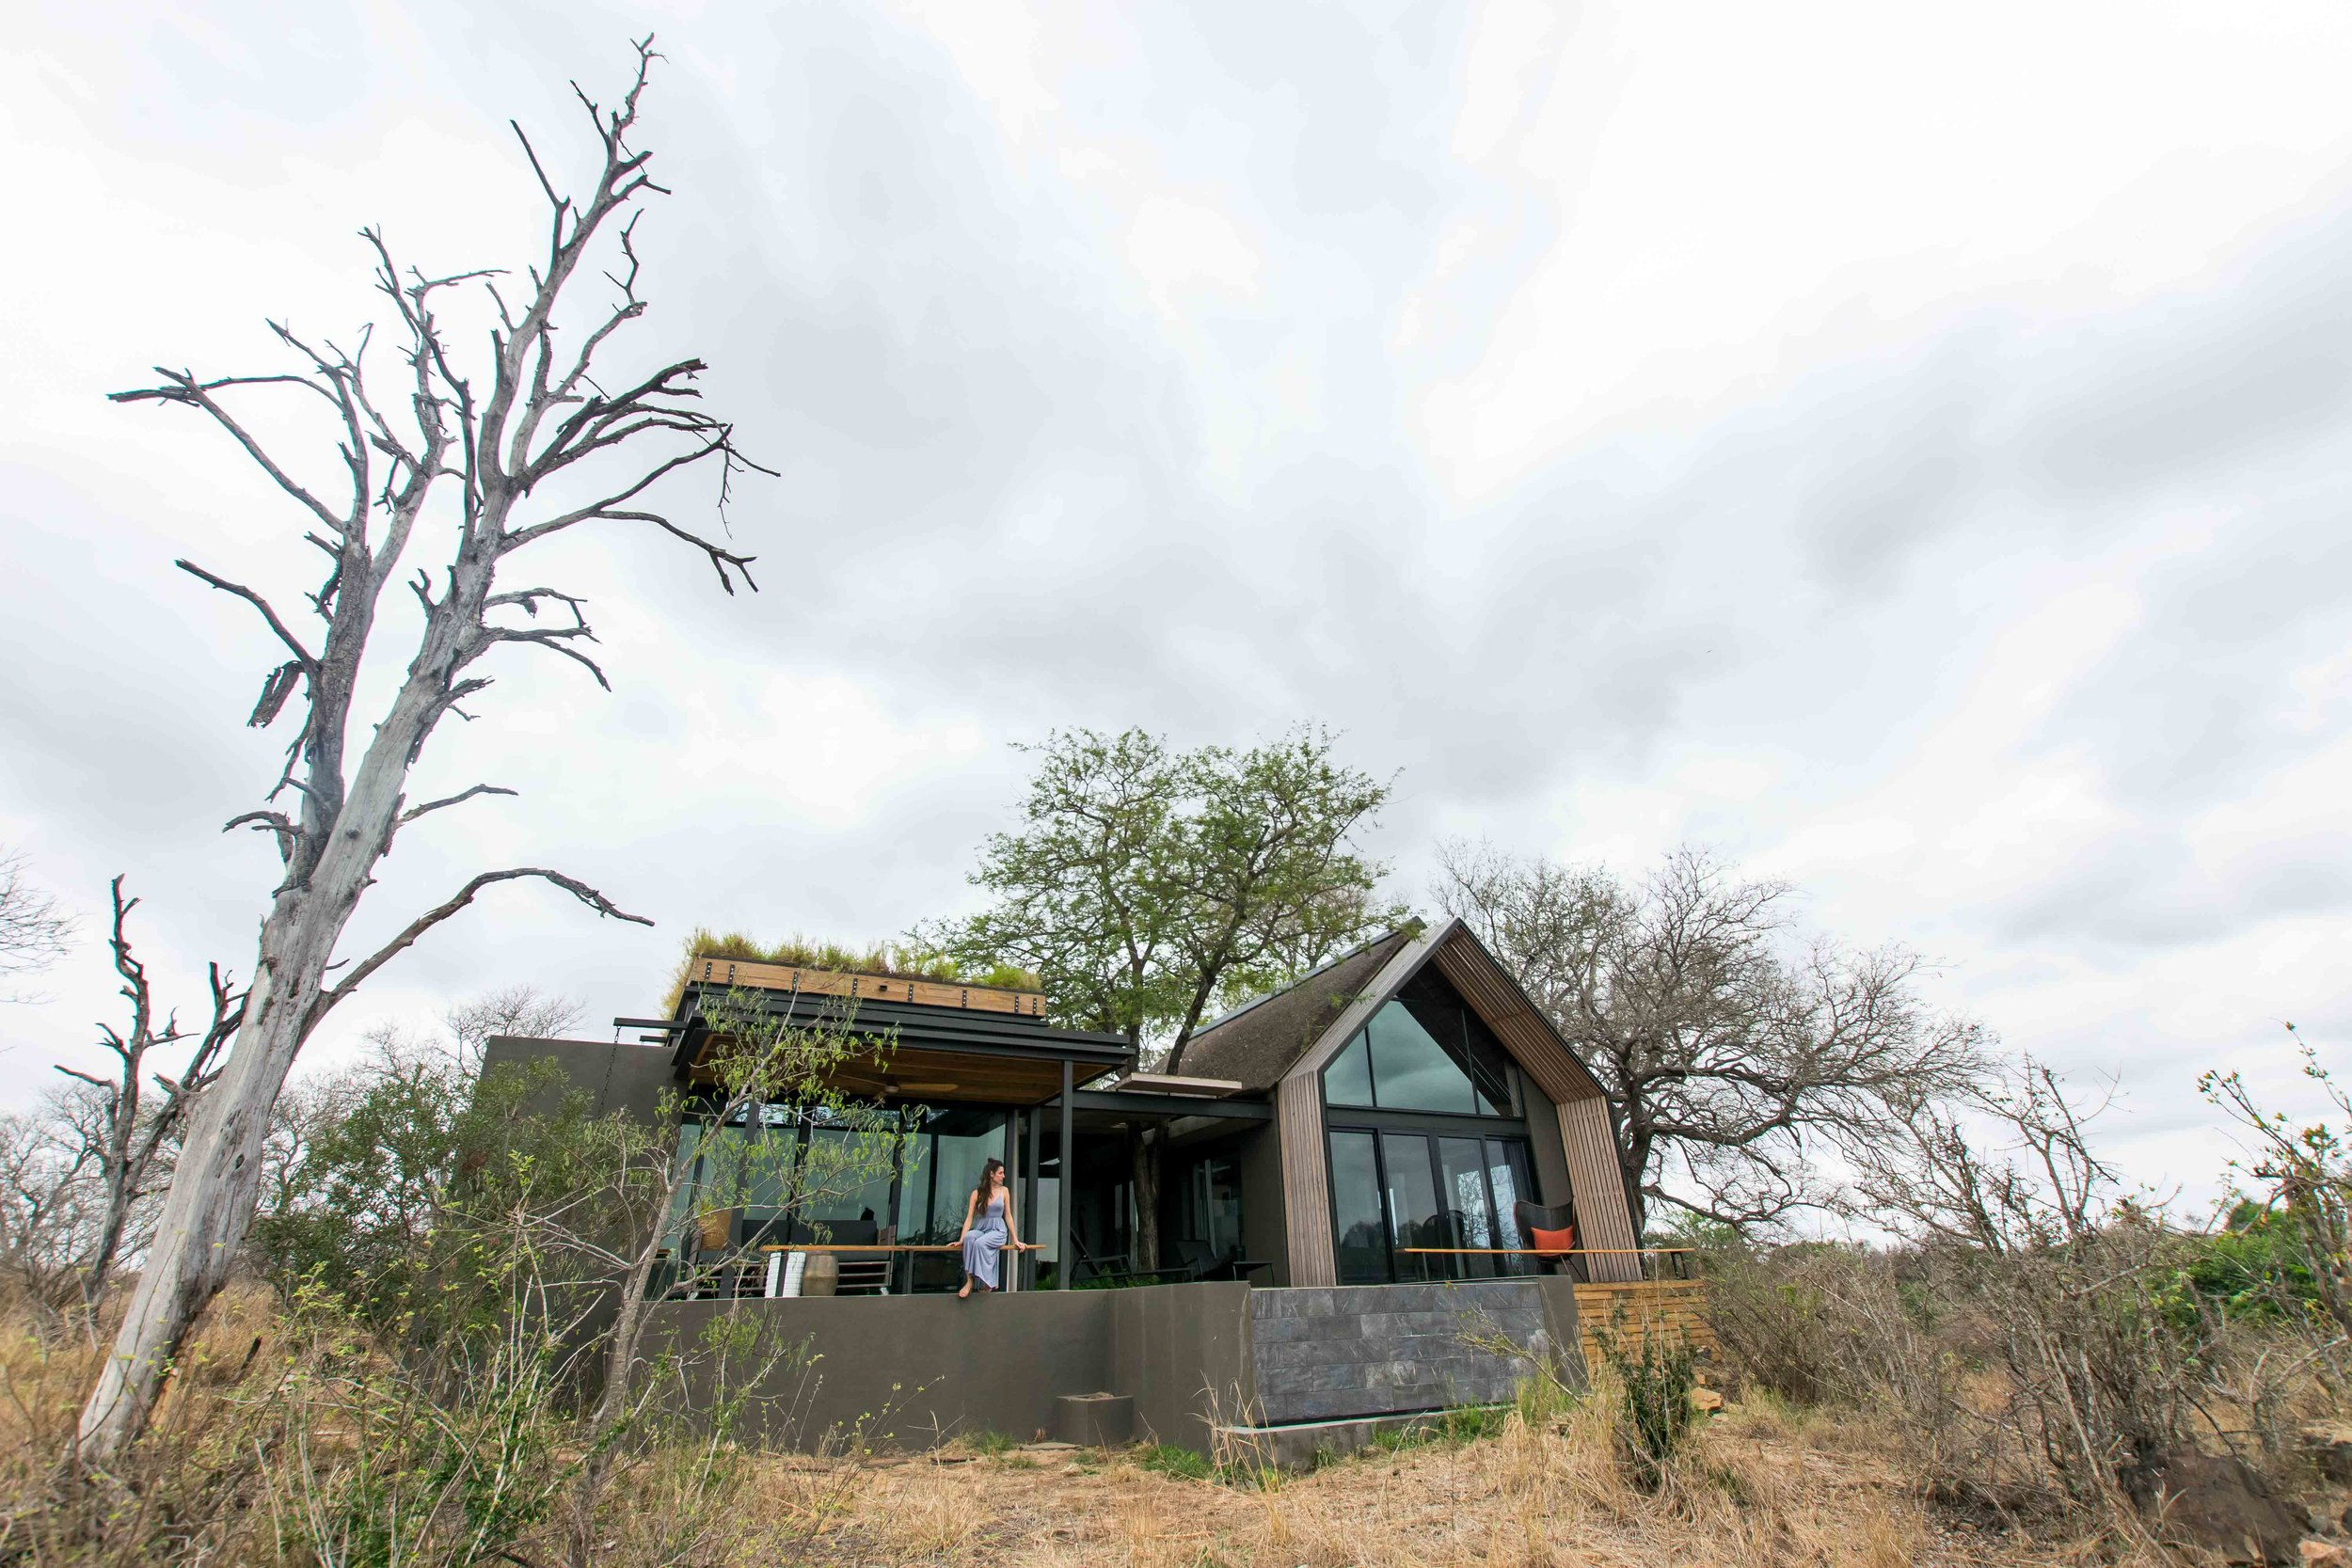 What it's like staying at a luxury safari lodge in South Africa